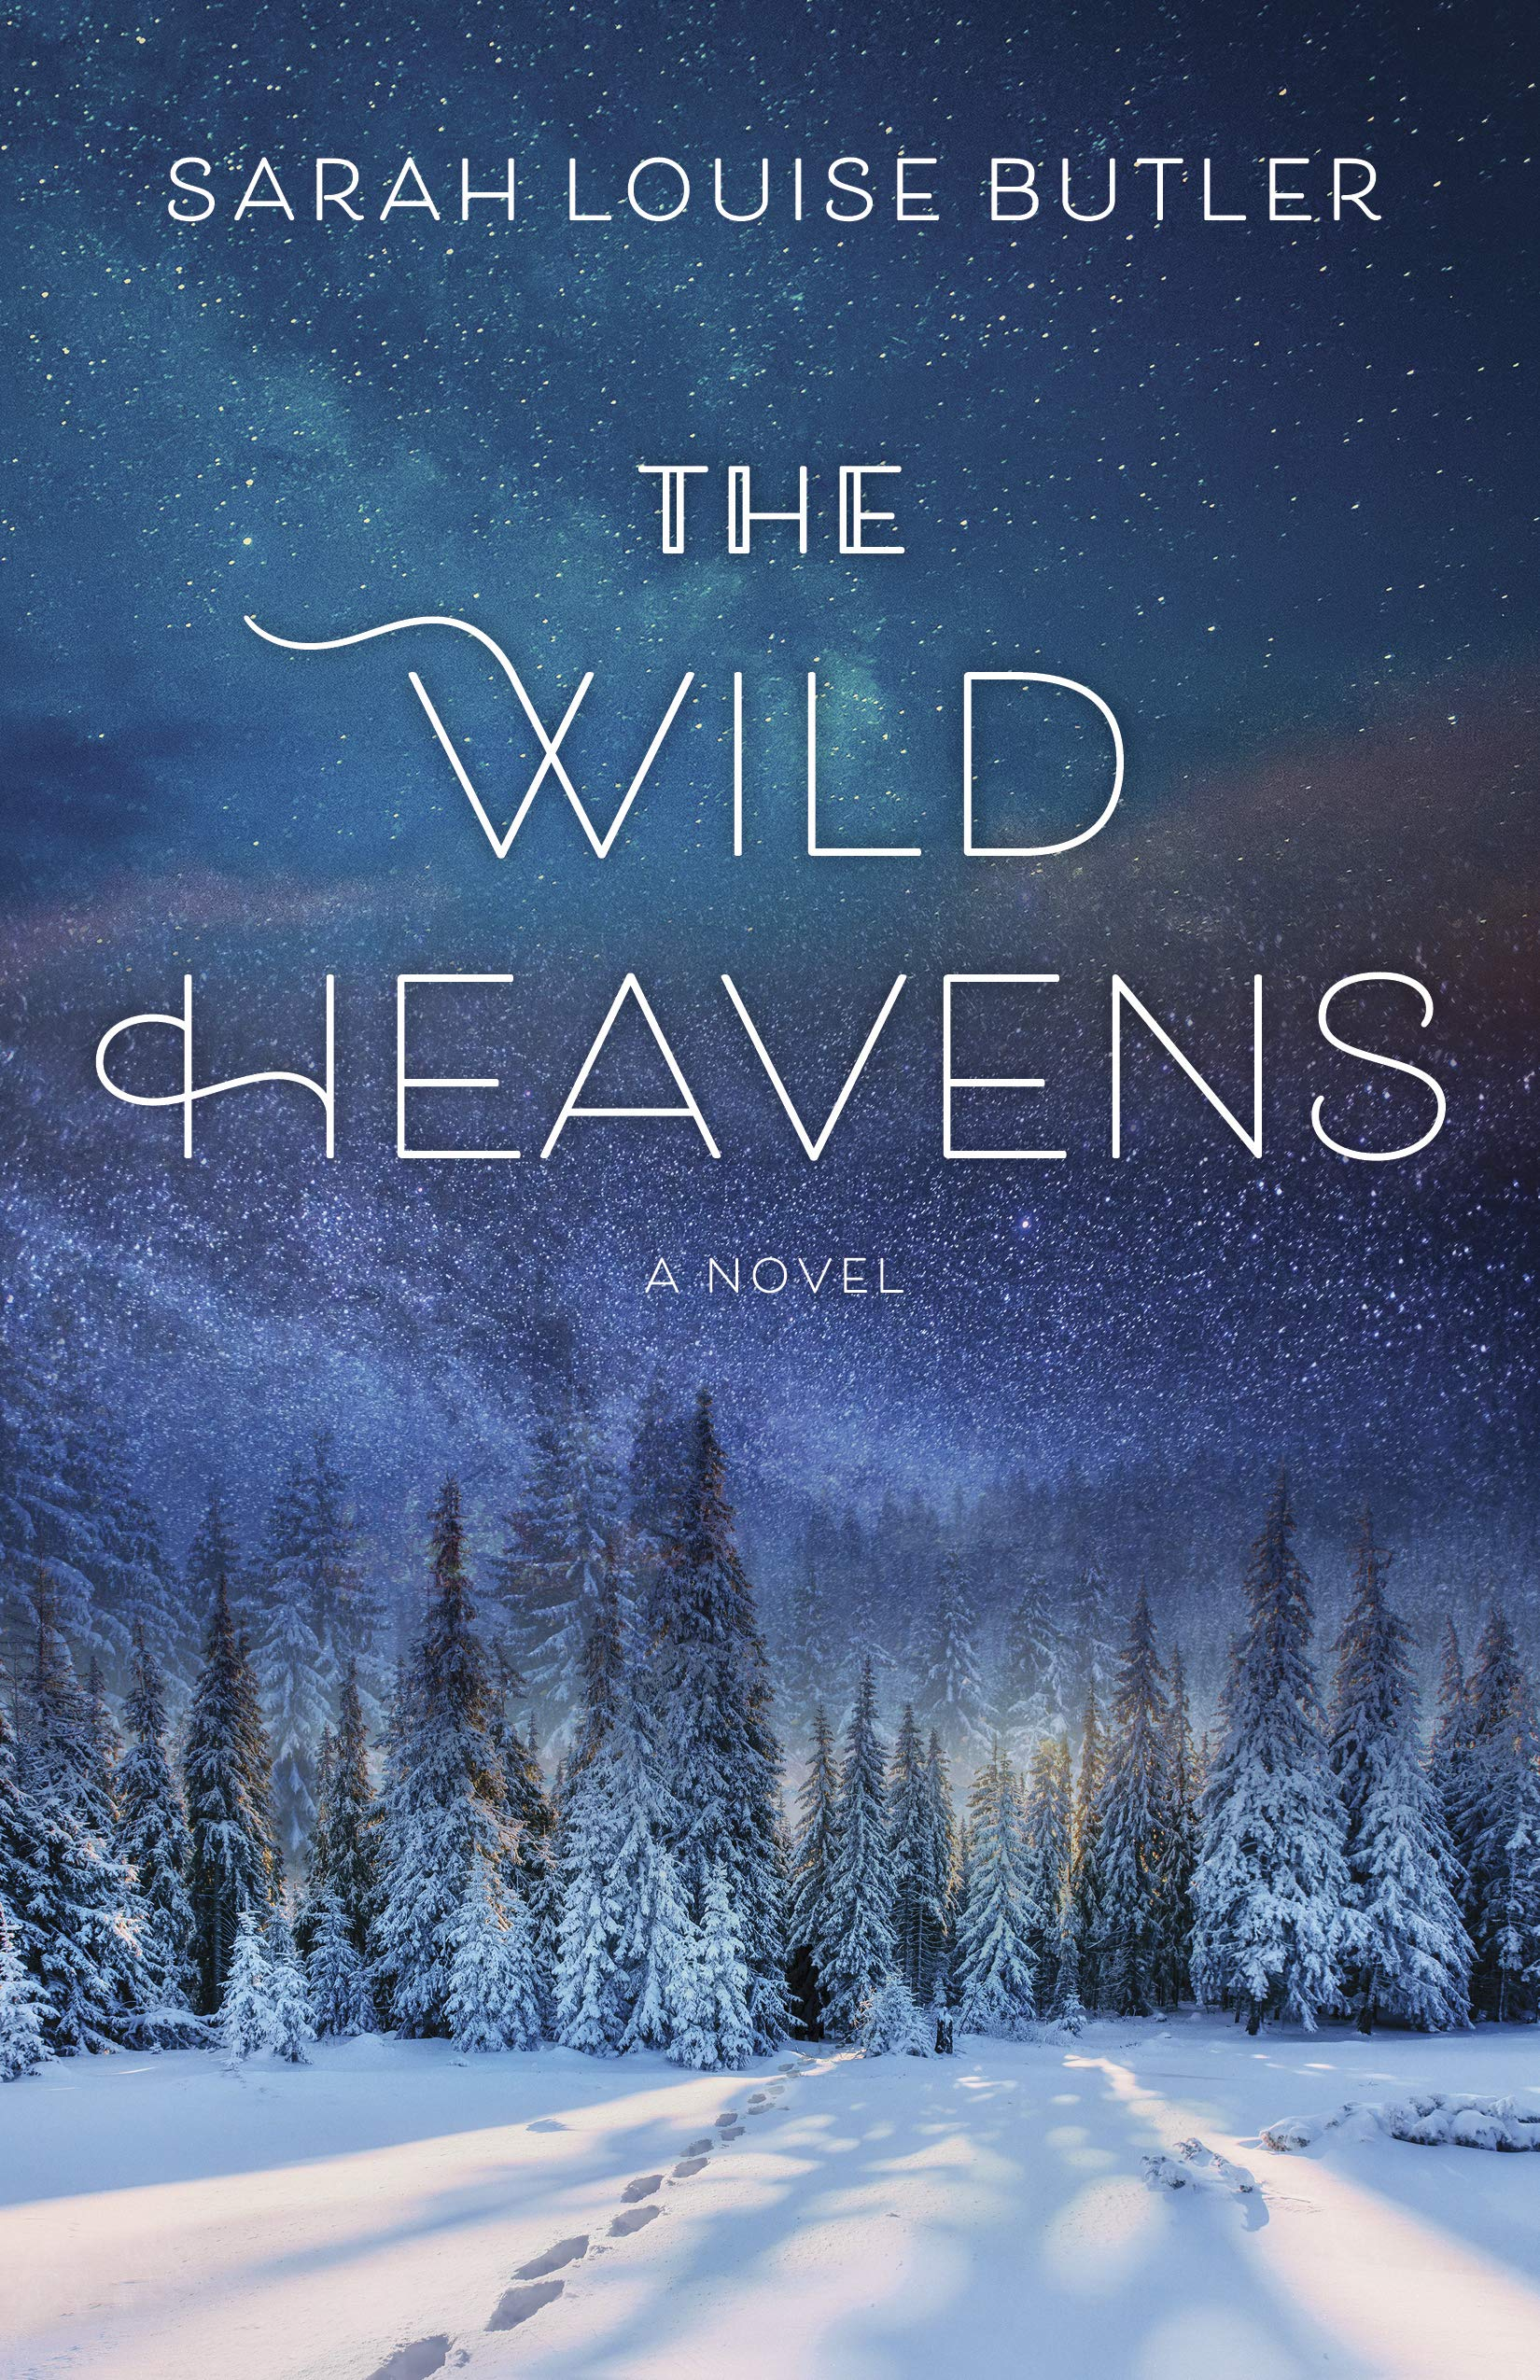 Book Review: The Wild Heavens